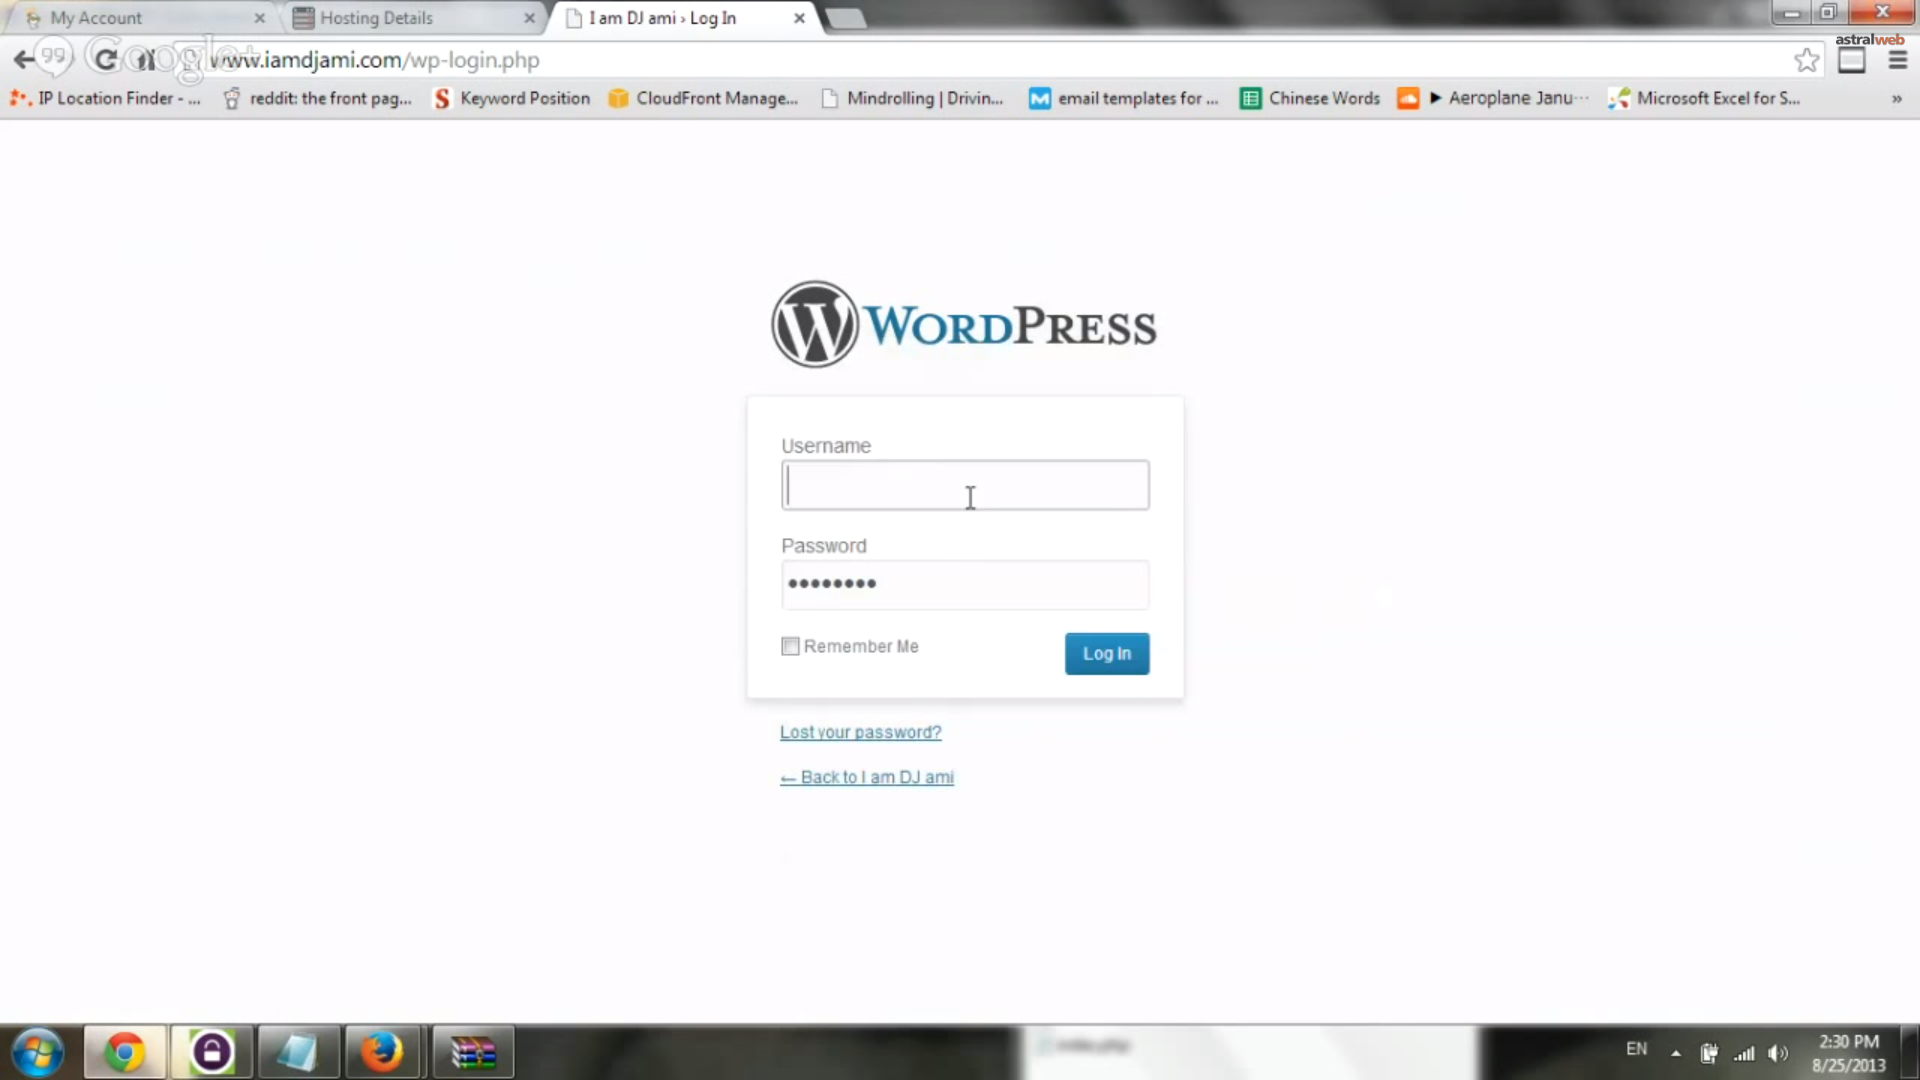 Login to WordPress Admin Area